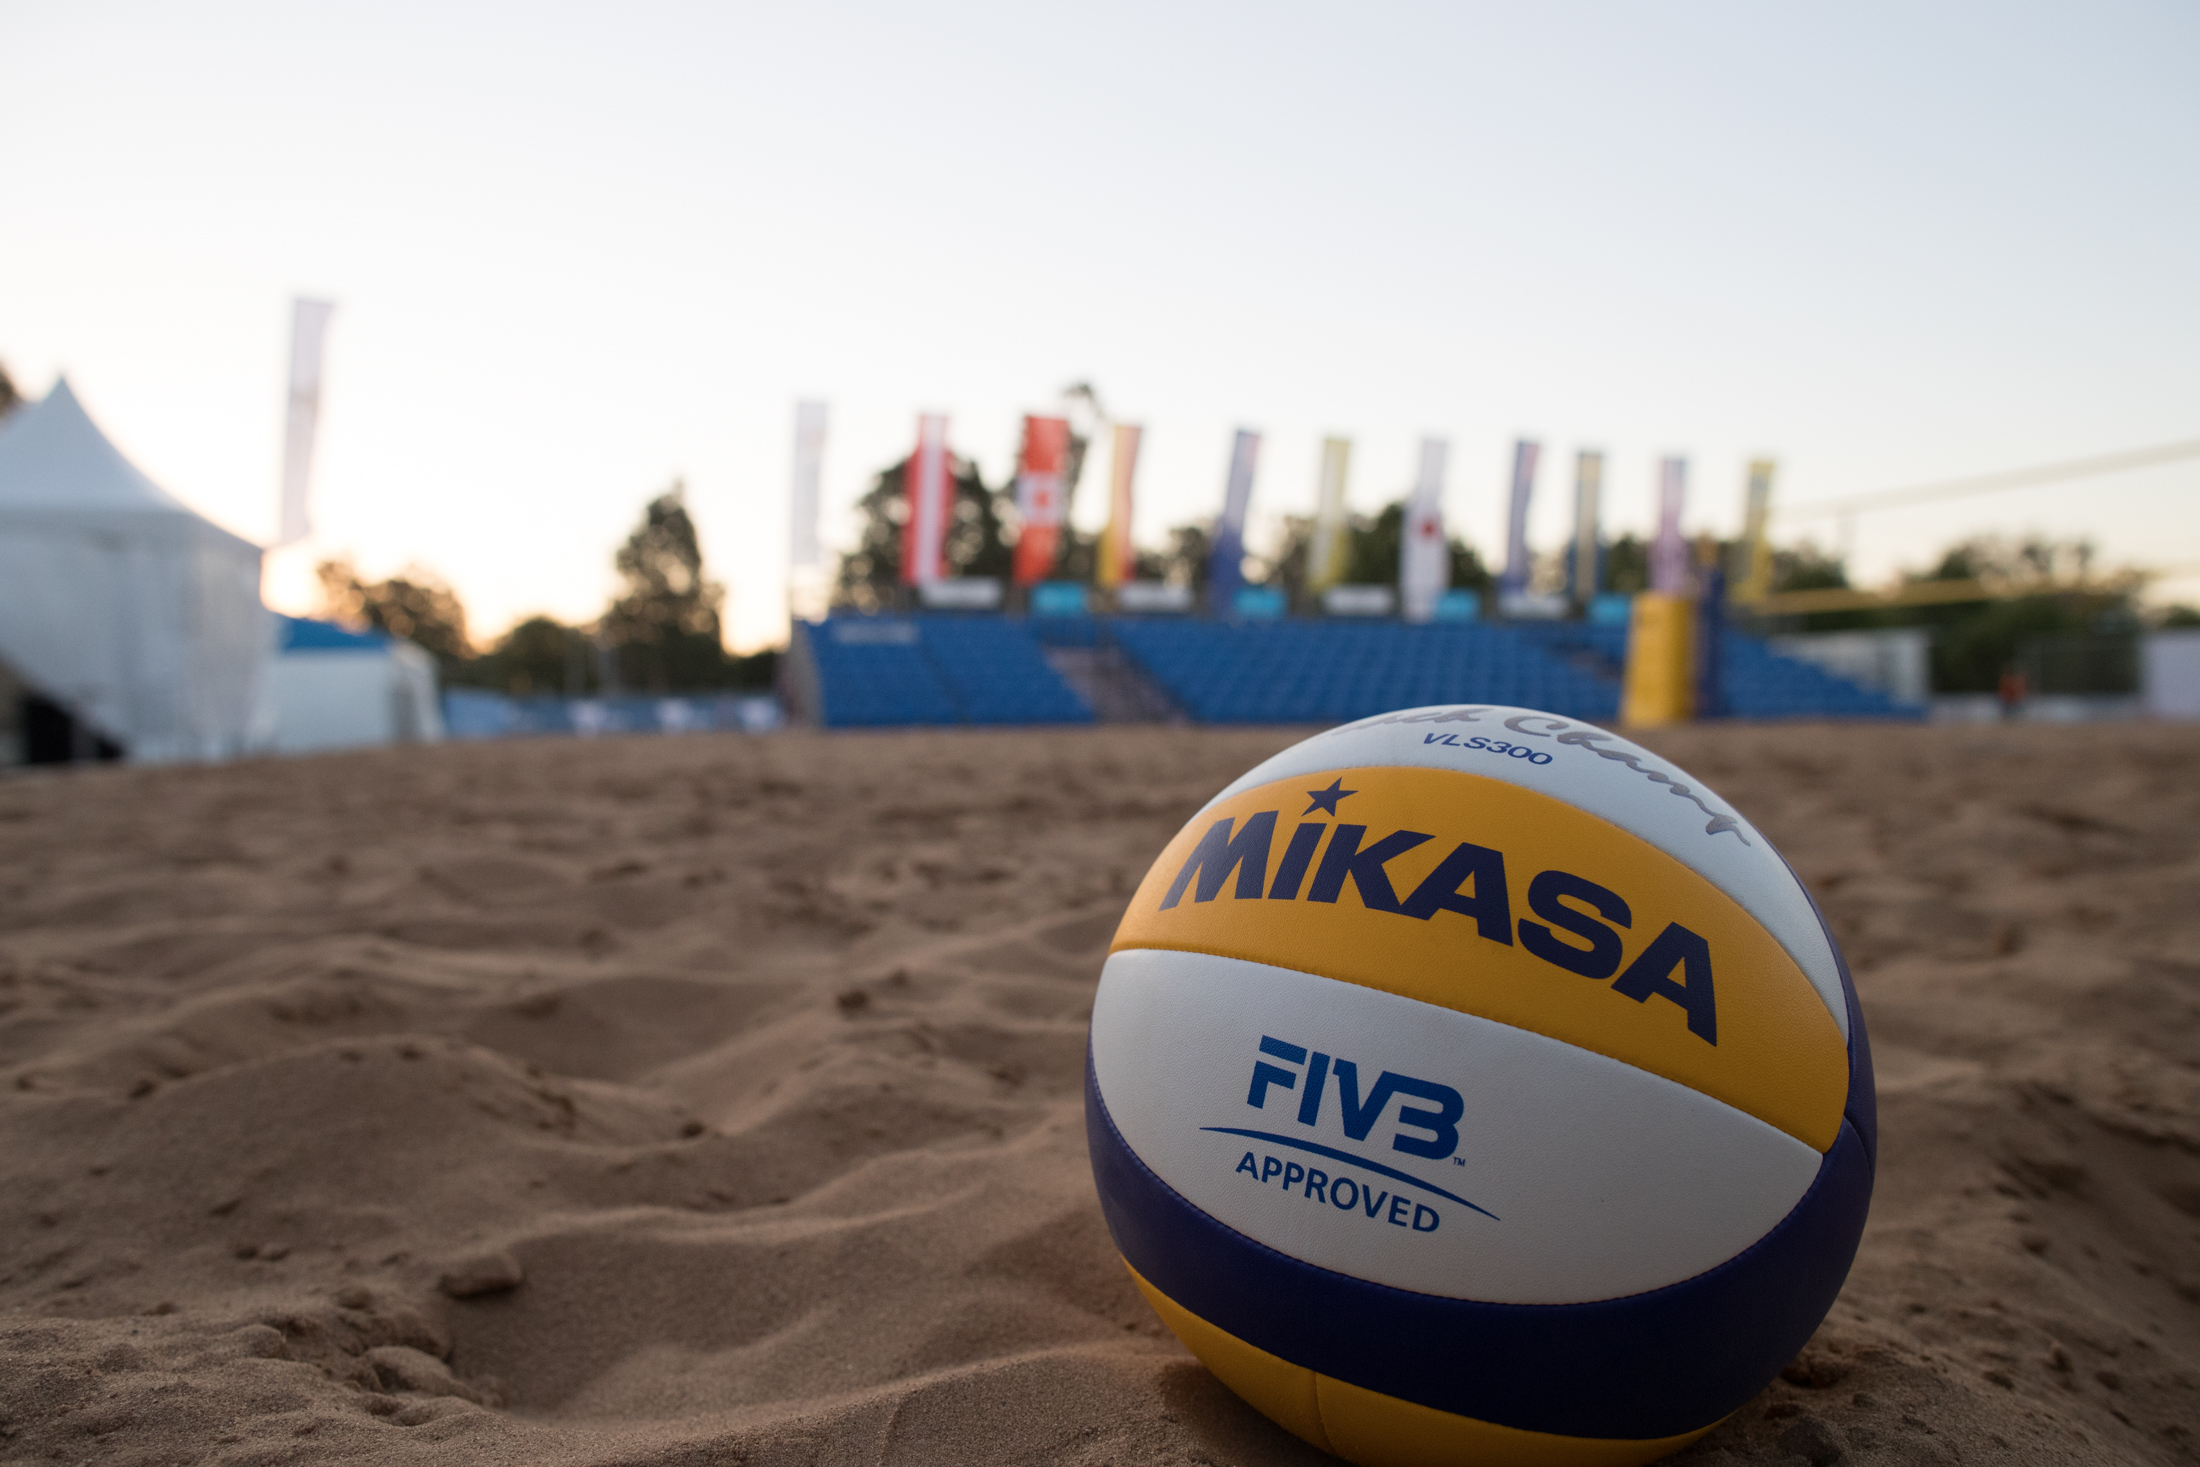 BEACH VOLLEYBALL EVENTS IN THAILAND PUT OFF OVER VIRUS FEARS